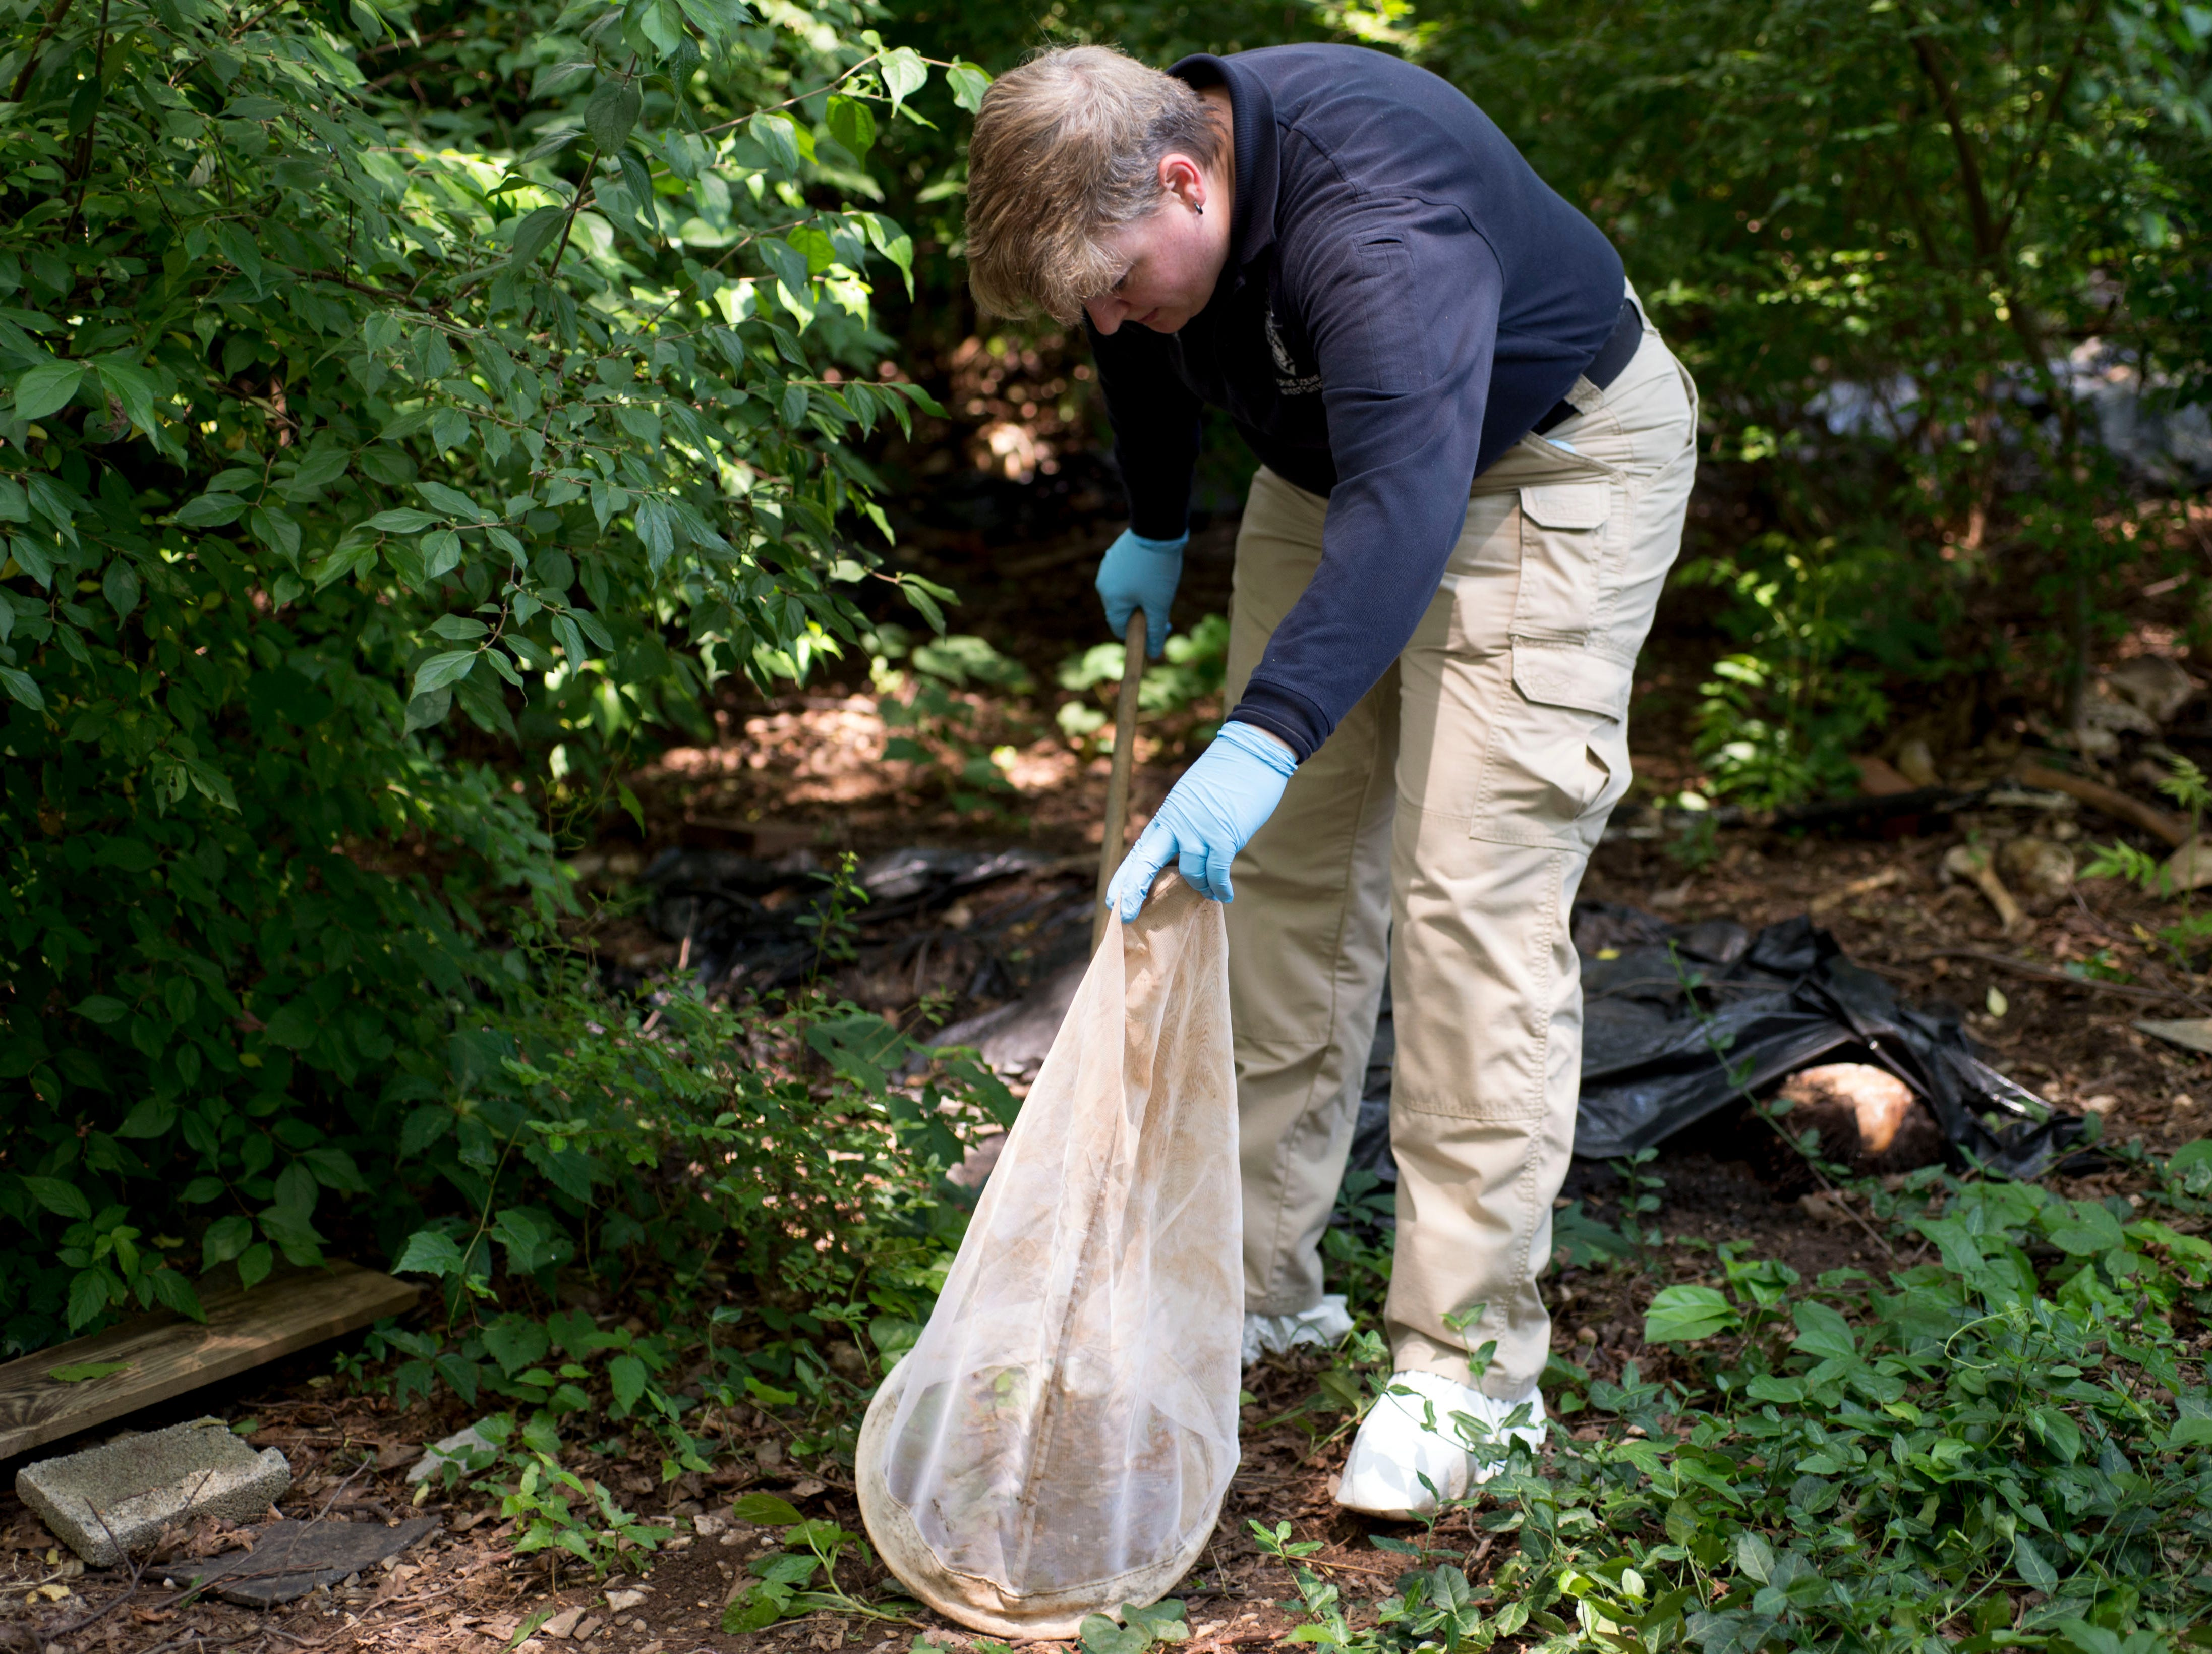 Bonnie Queen of North Carolina's Charlotte-Mecklenburg County Police Department tries to capture flies found near cadavers on Wednesday, June 10, 2015 during a weeklong forensics training course at the University of Tennessee's Forensic Anthropology Center.